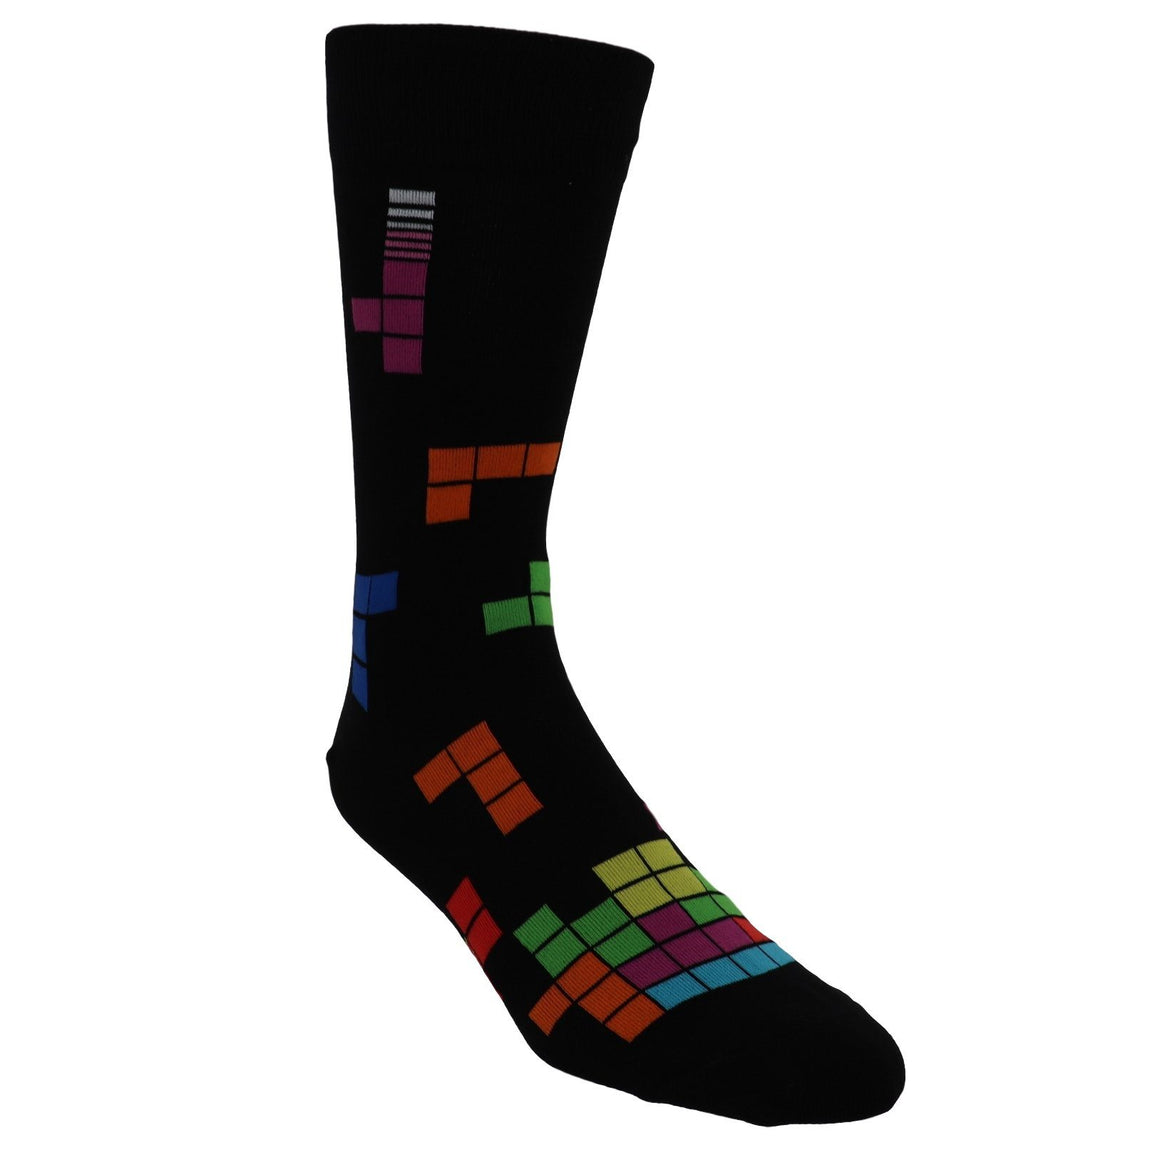 Tetris High Score Men's Socks by Sock it to Me - The Sock Spot